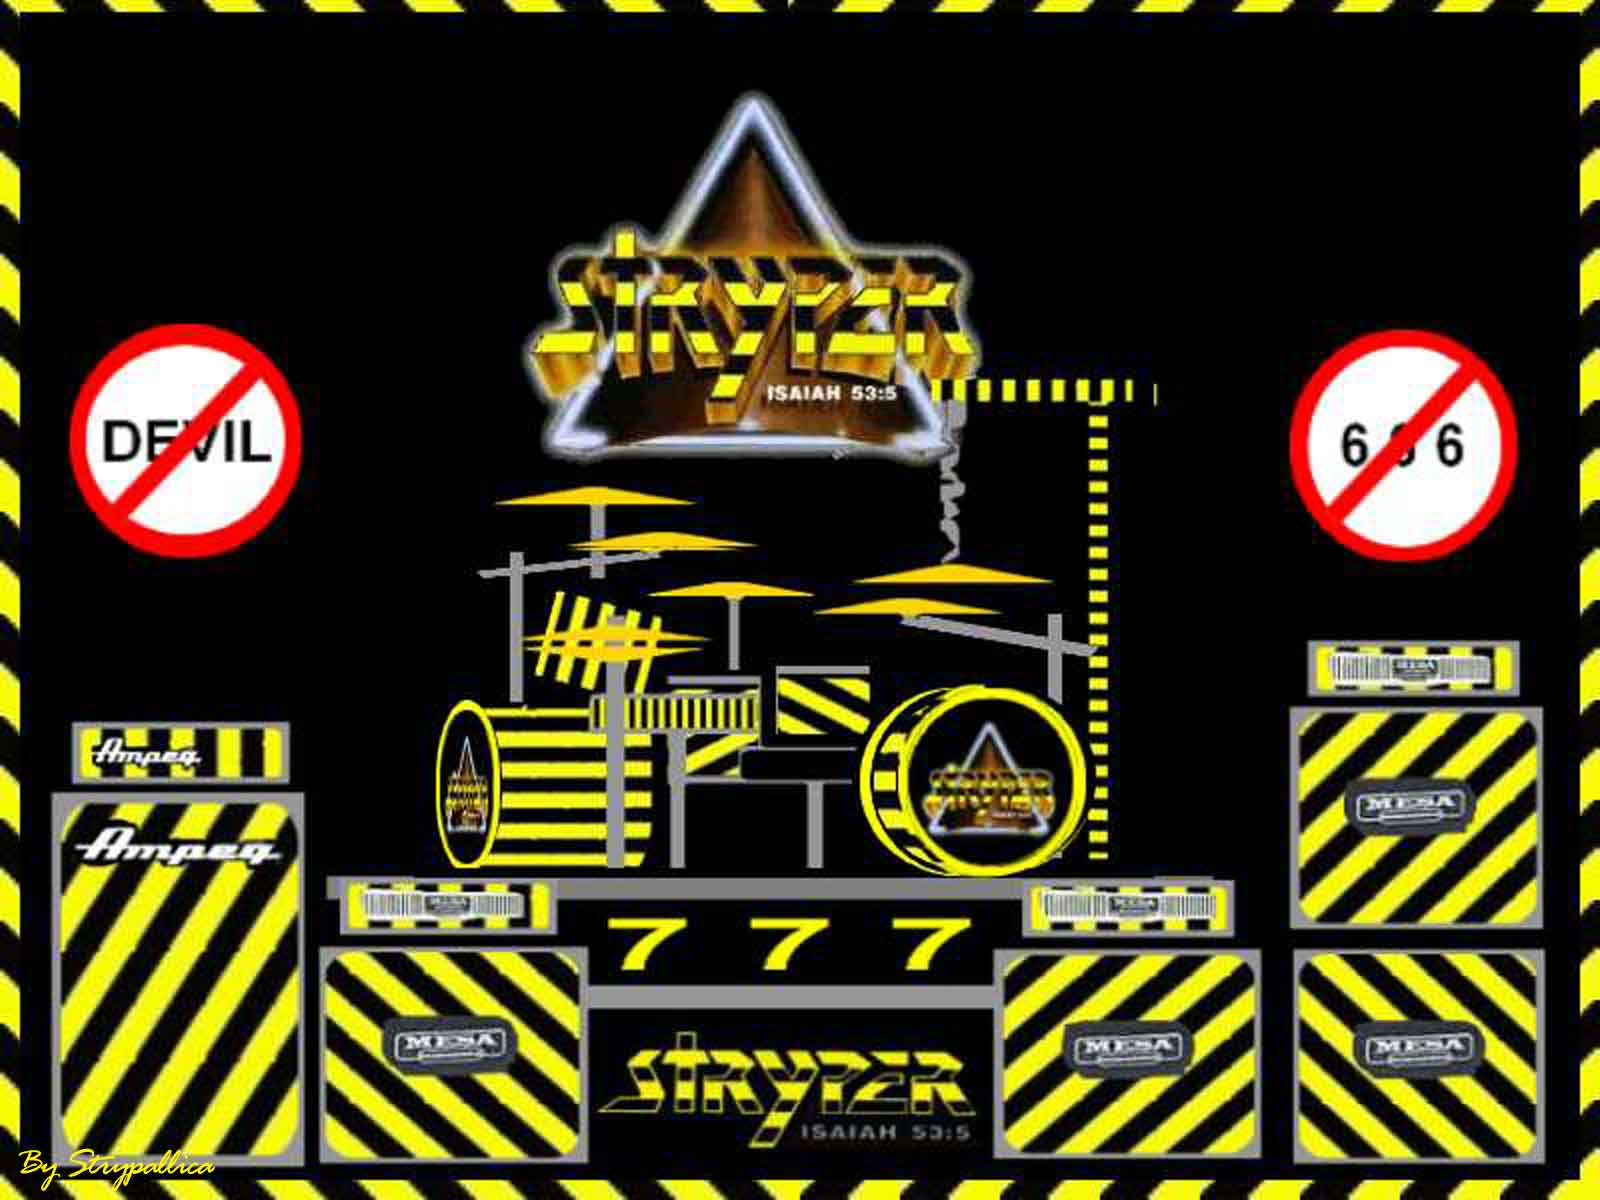 Stryper Wallpaper